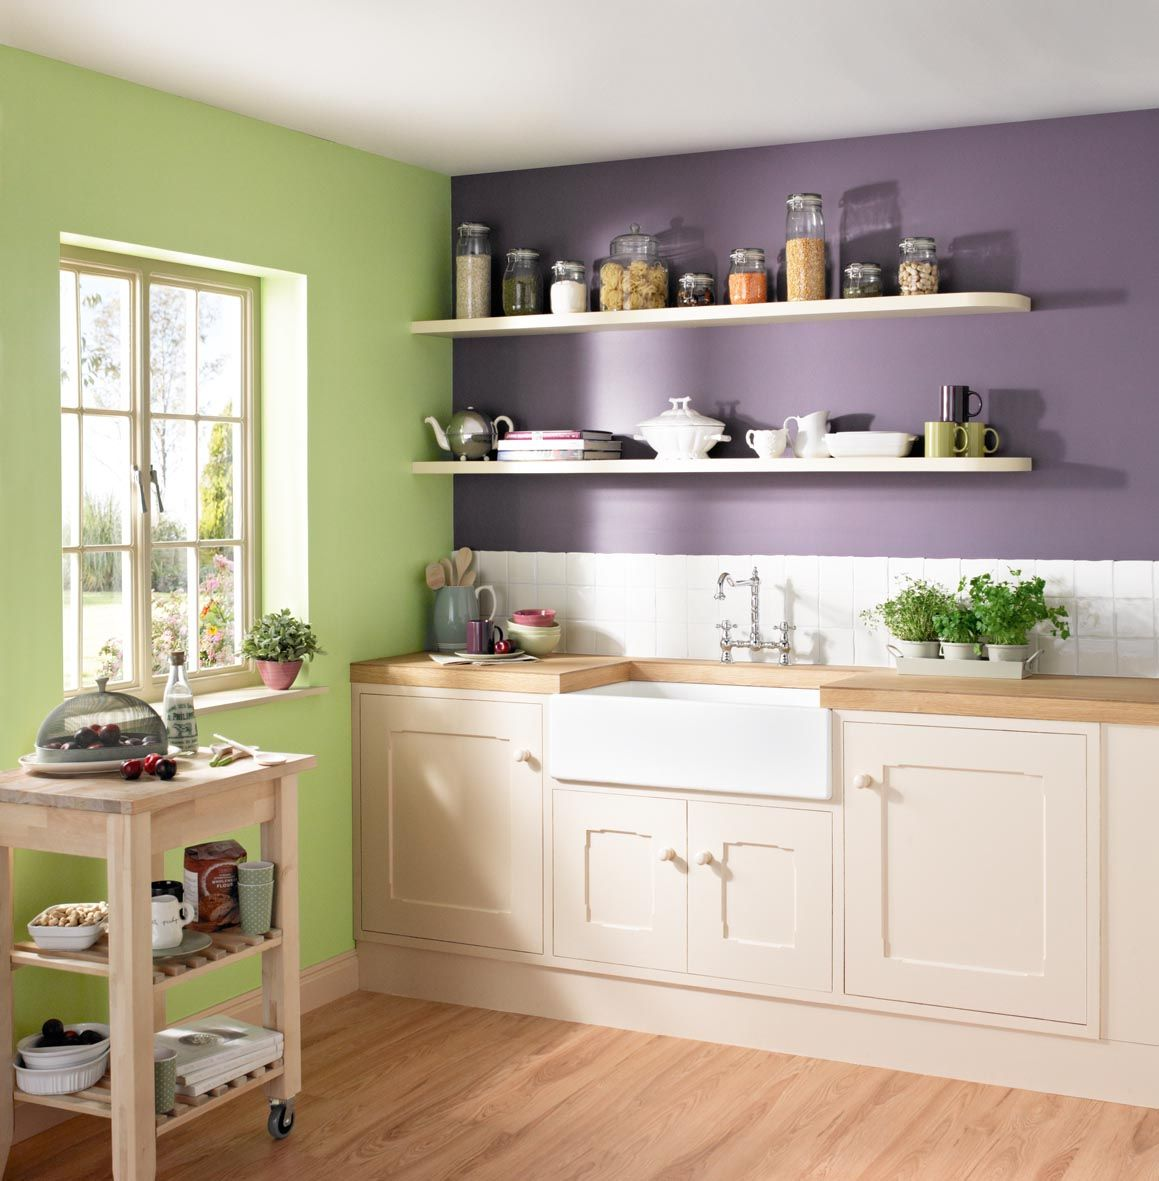 For Kitchen Colours Crown Kitchen Bathroom Paint In Olive Press Green And Lola